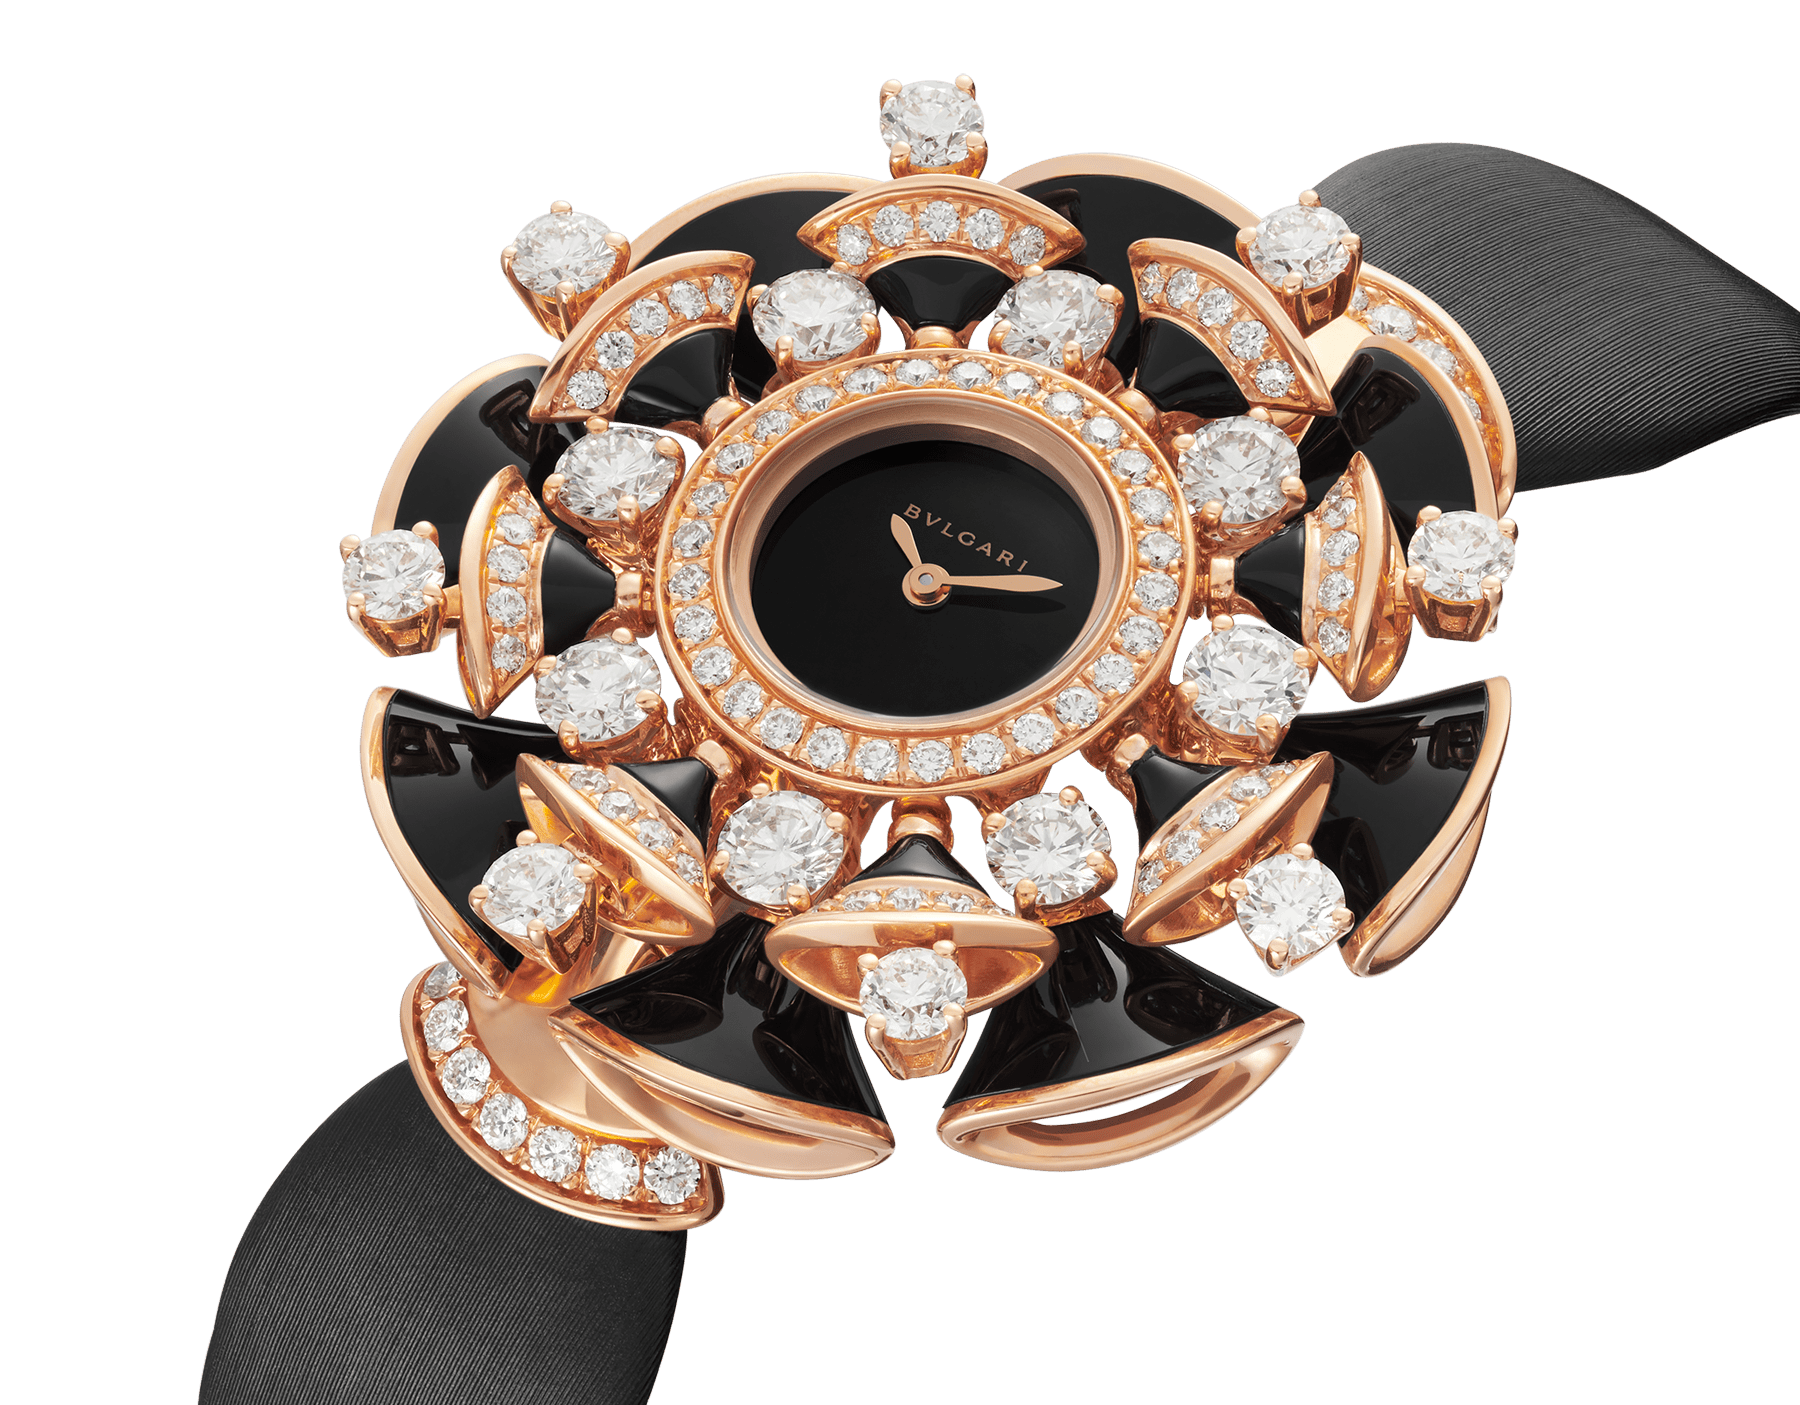 DIVAS' DREAM watch with 18 kt rose gold case set with brilliant-cut diamonds, round-cut diamonds, and onyx elements, black lacquered dial and black satin bracelet 102216 image 2